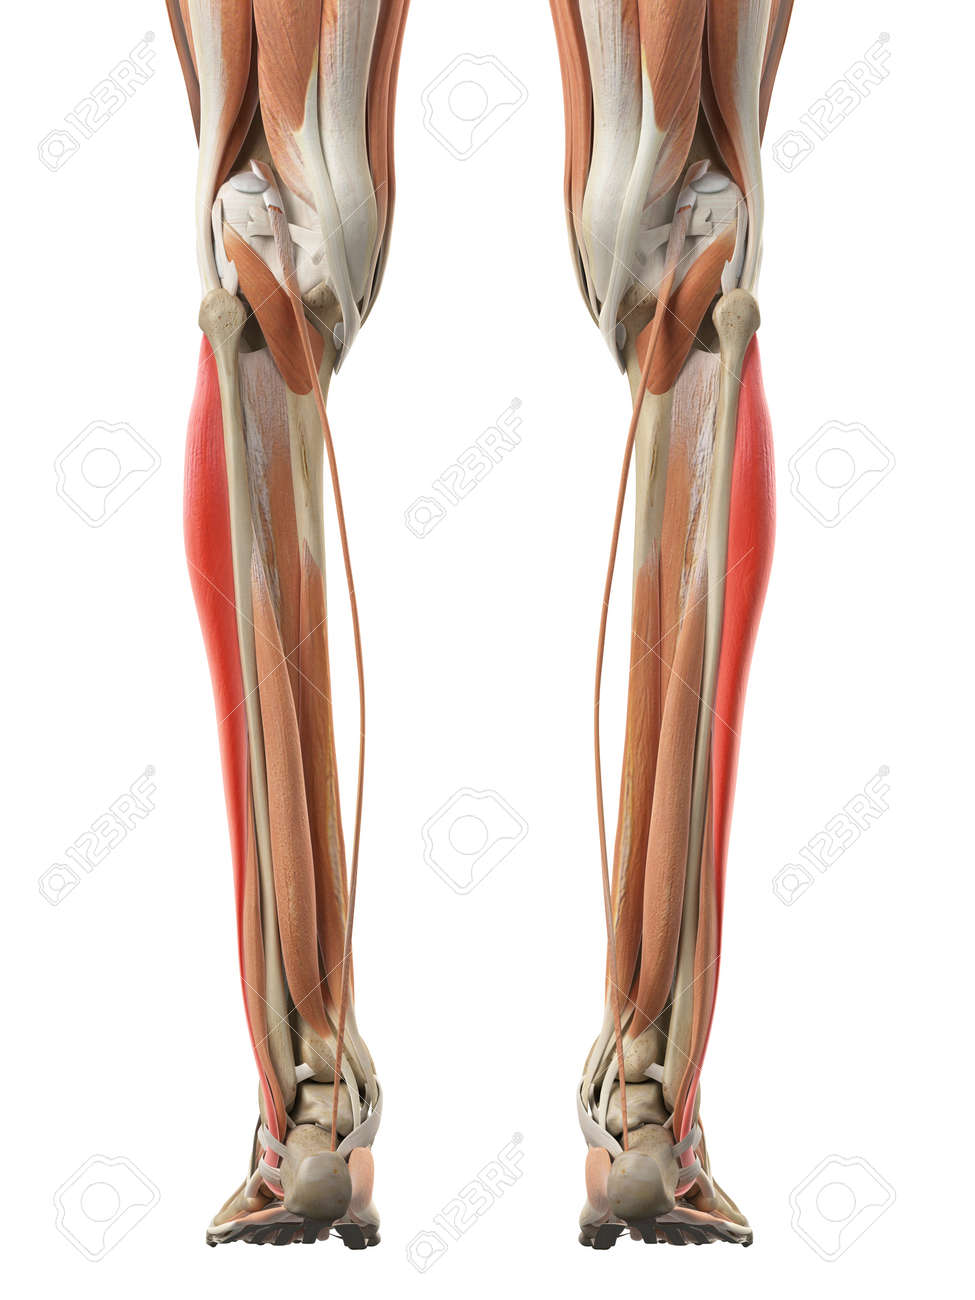 Medically Accurate Illustration Of The Peroneus Longus Stock Photo